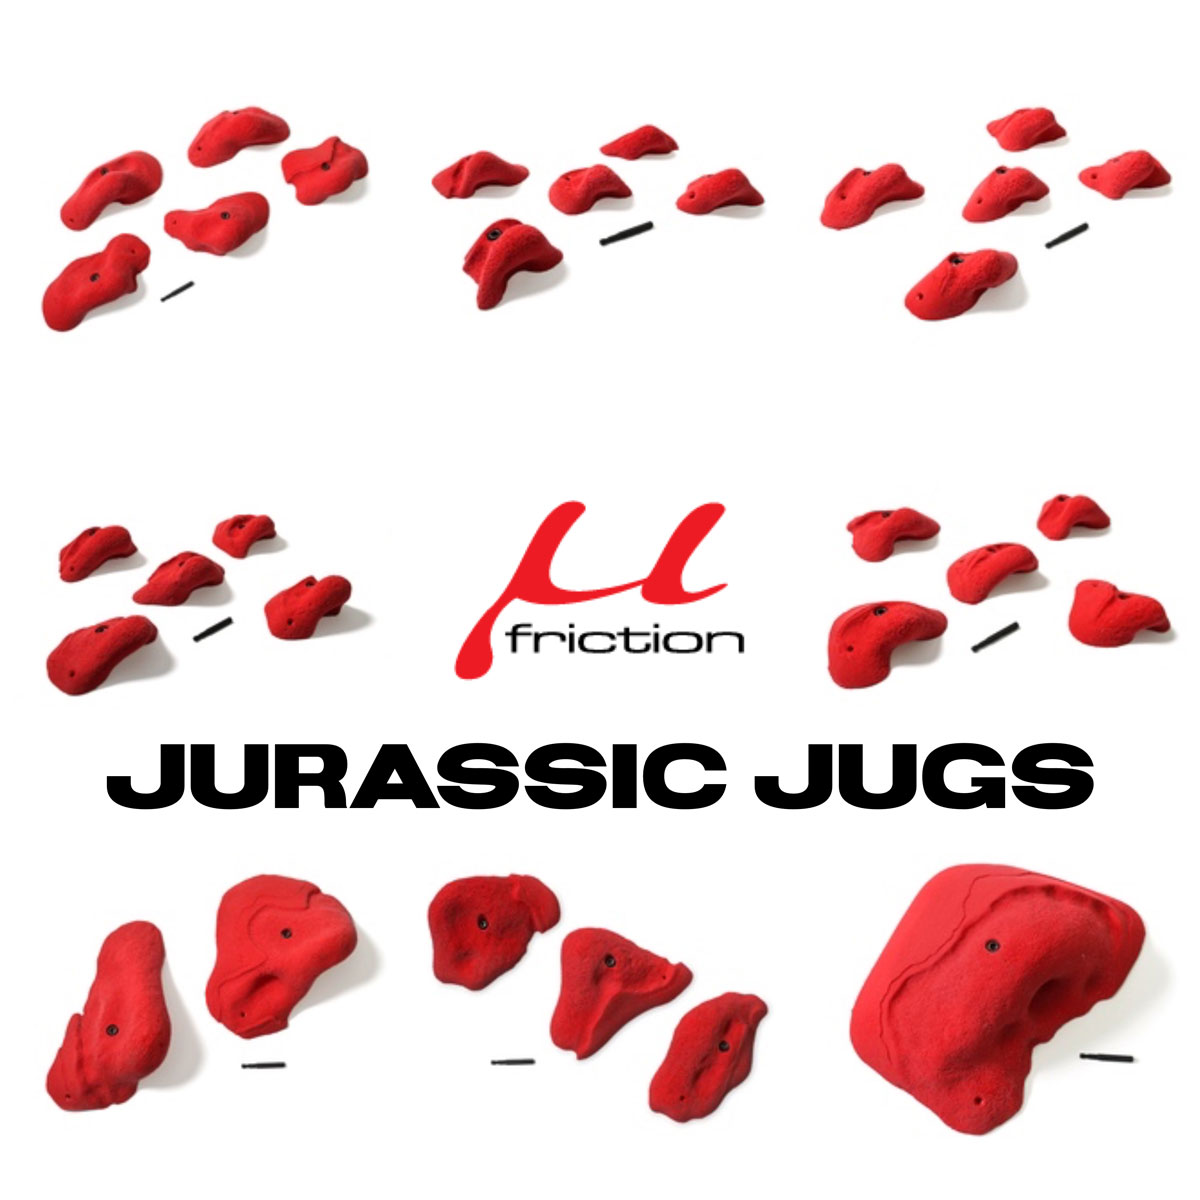 Jurassic Jugs from Friction Holds